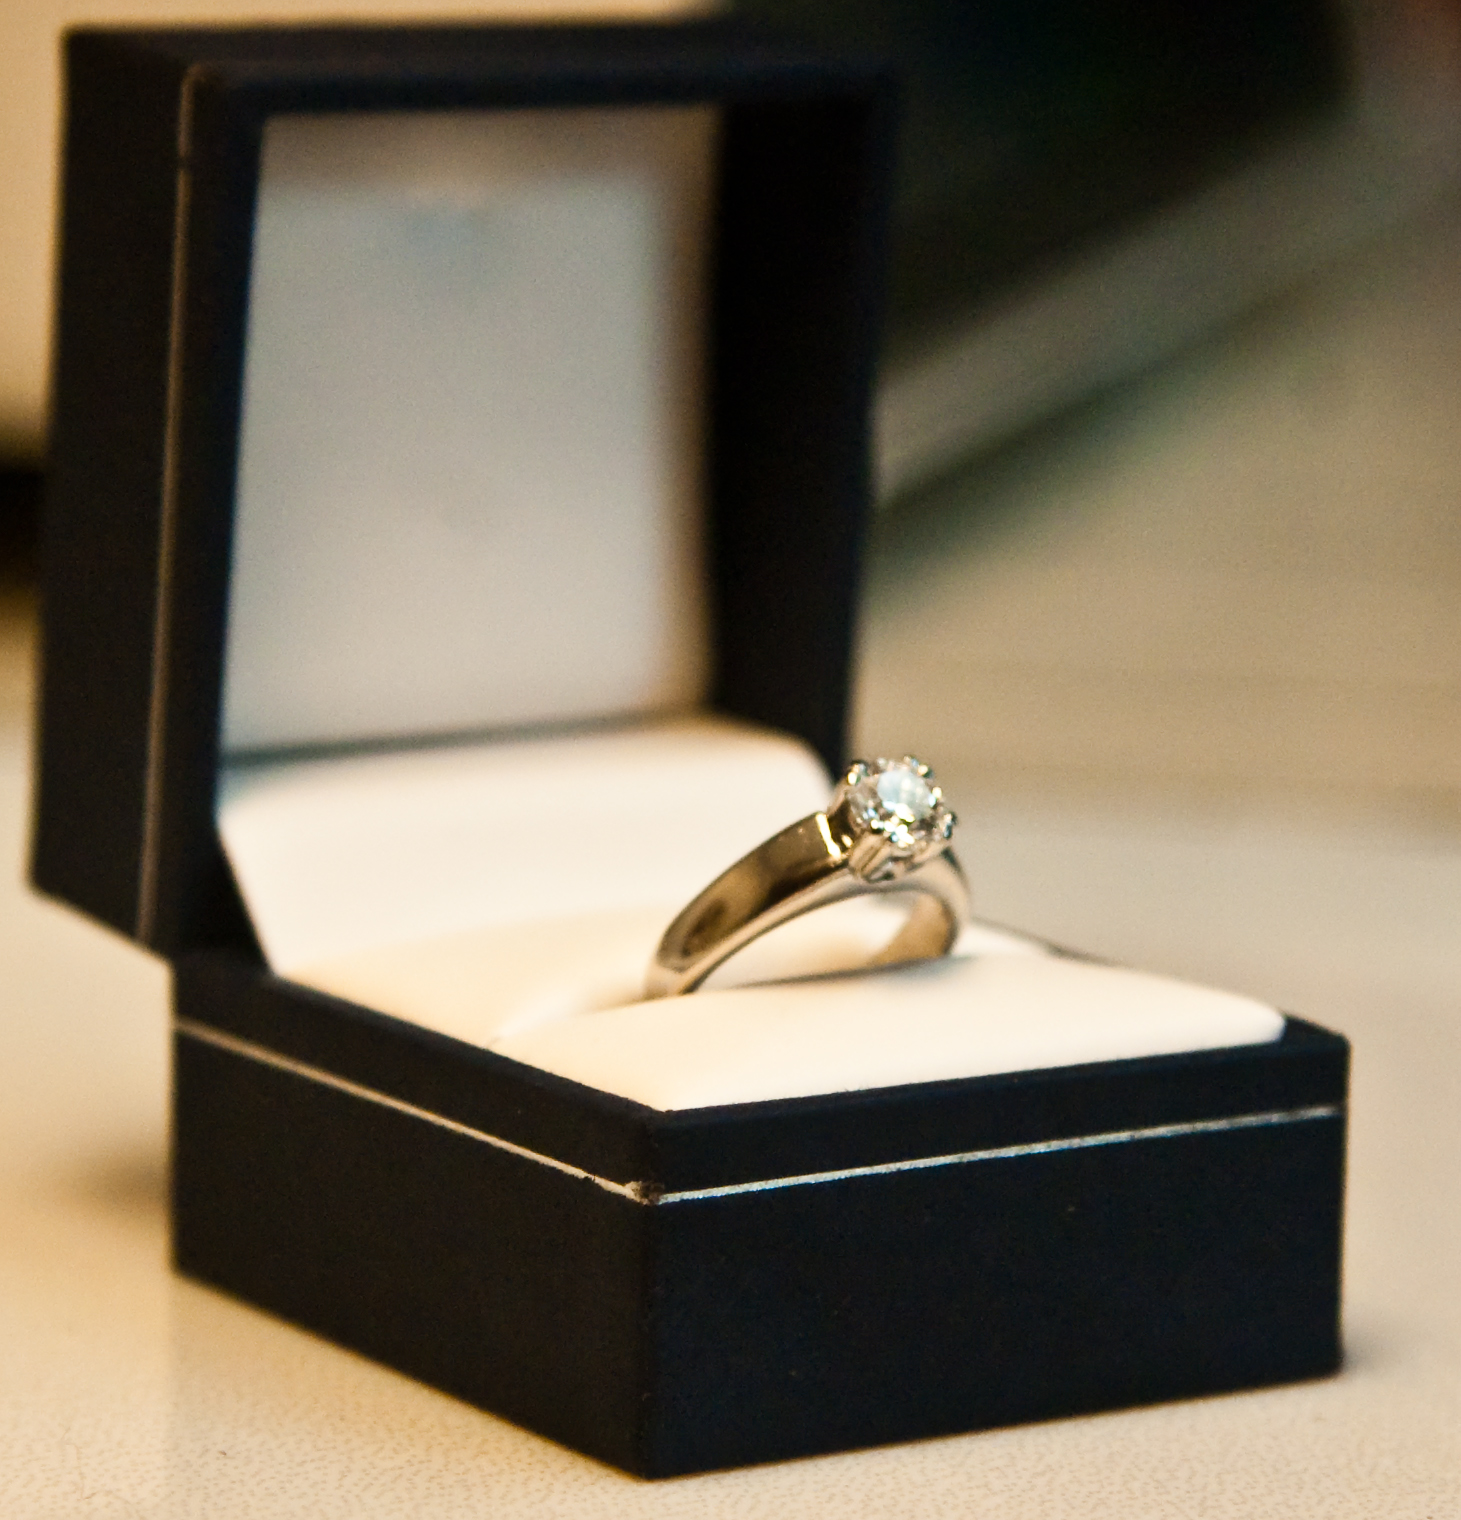 Simple engagement ring in box